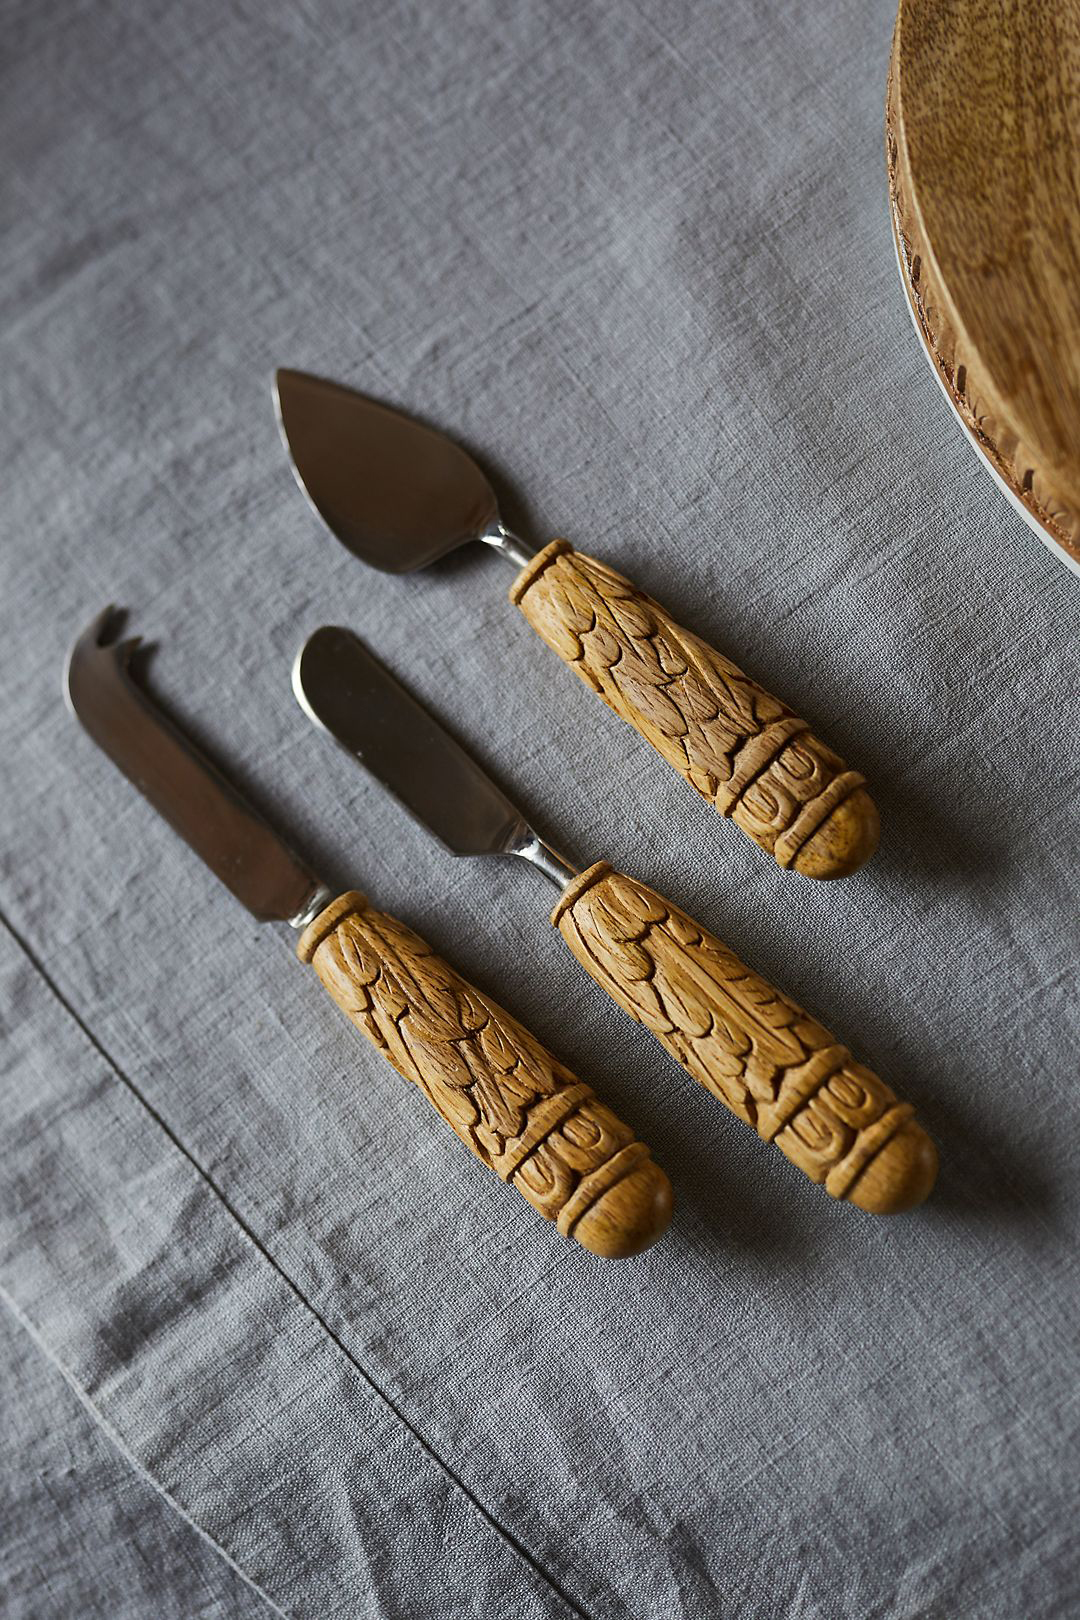 Carved Wood Cheese Knives